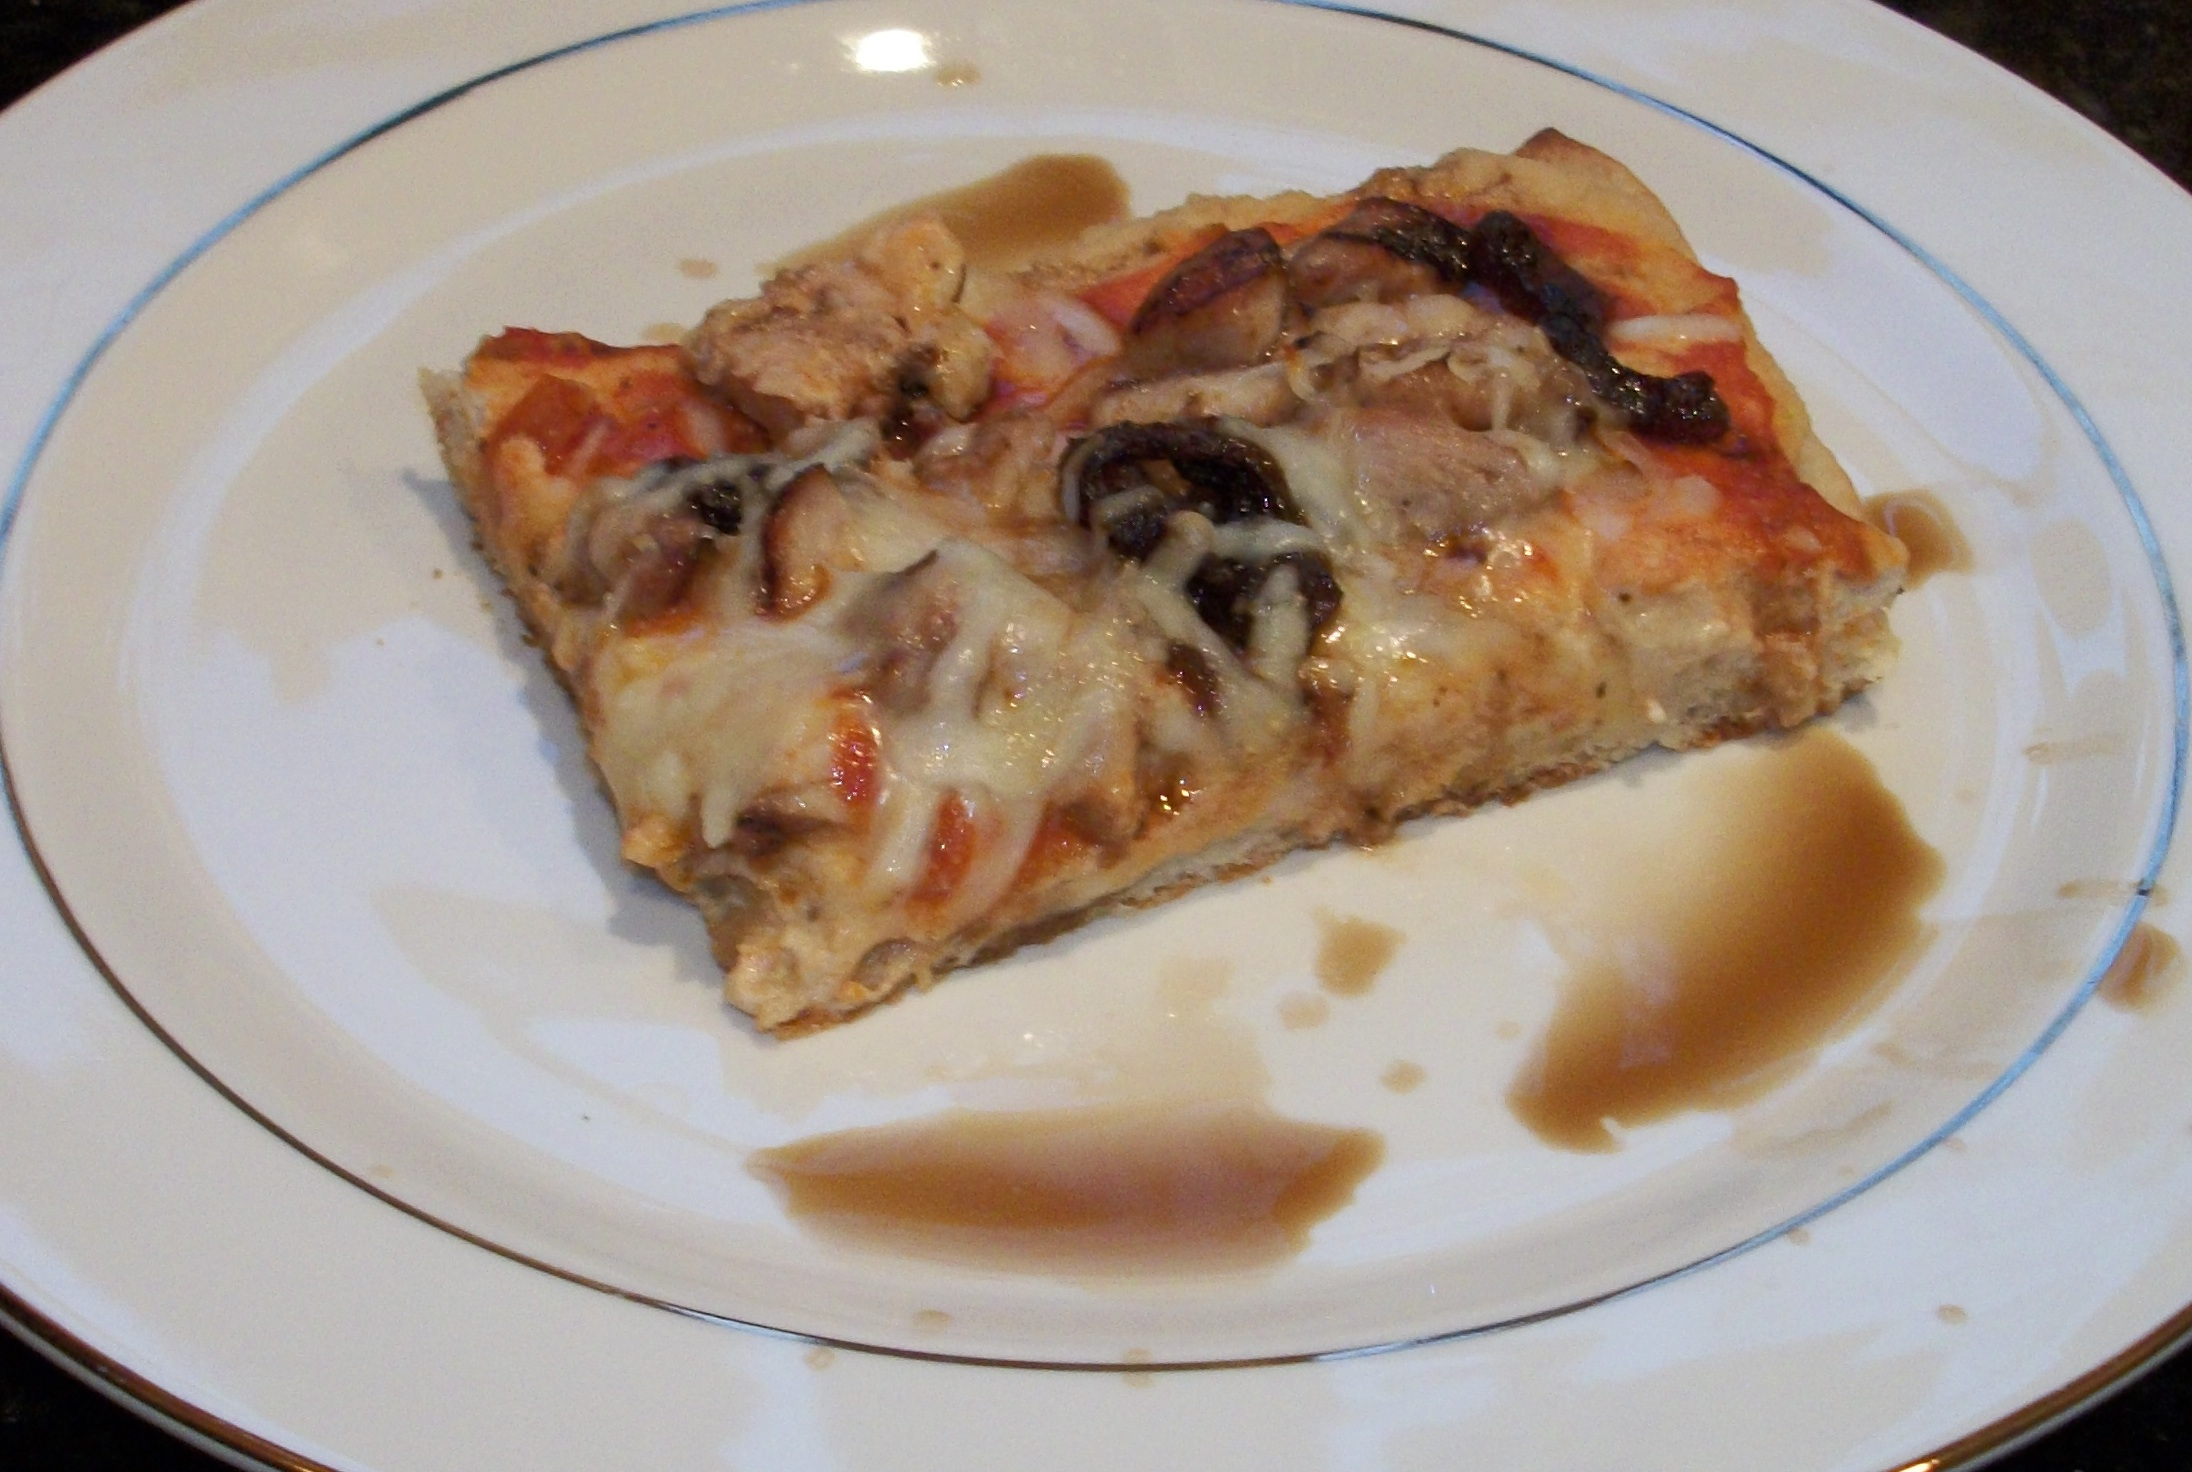 Slice of Homemade Balsamic Chicken Pizza